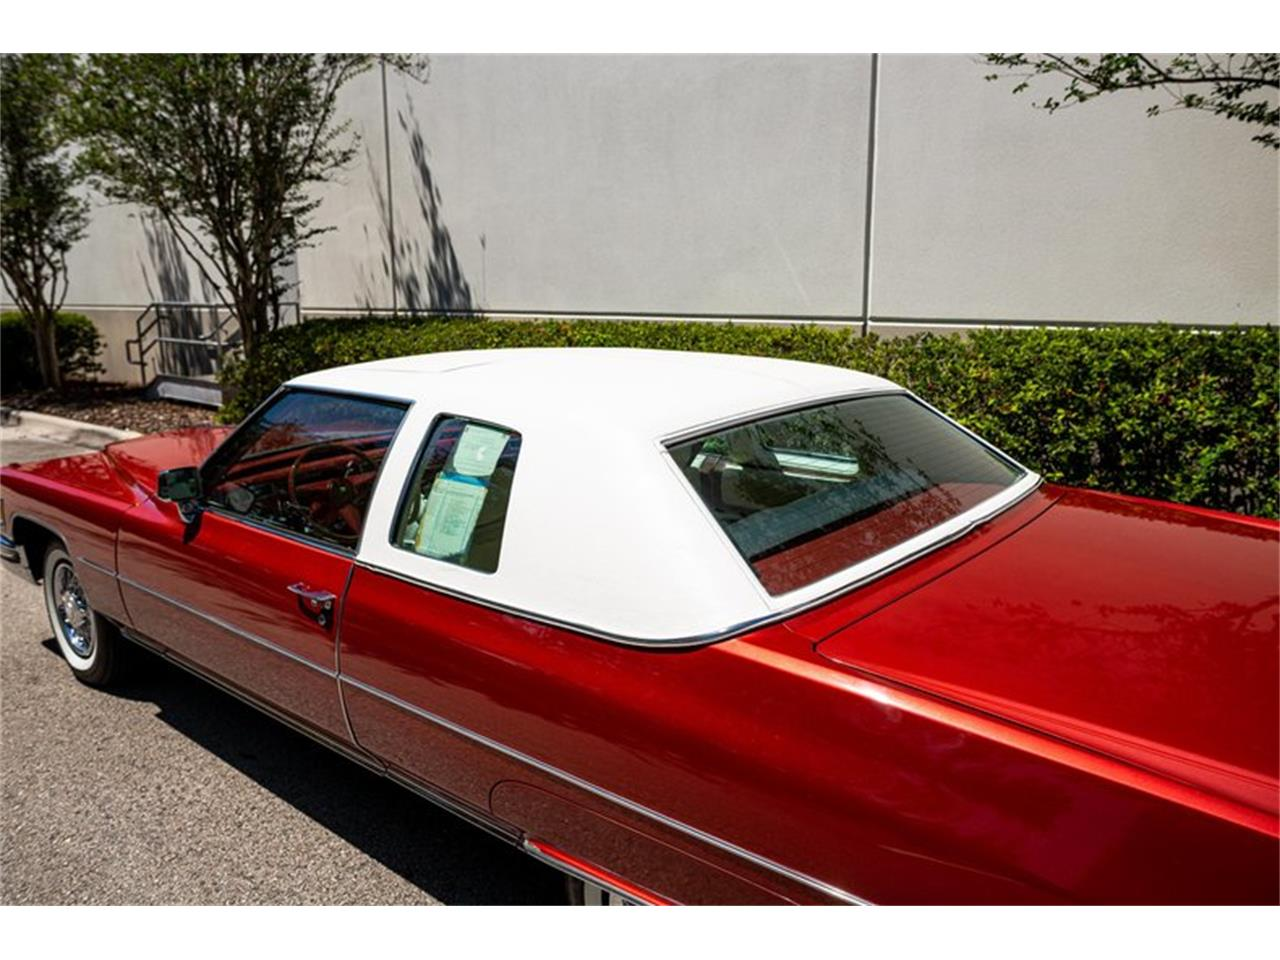 1976 Cadillac Coupe (CC-1352673) for sale in Orlando, Florida